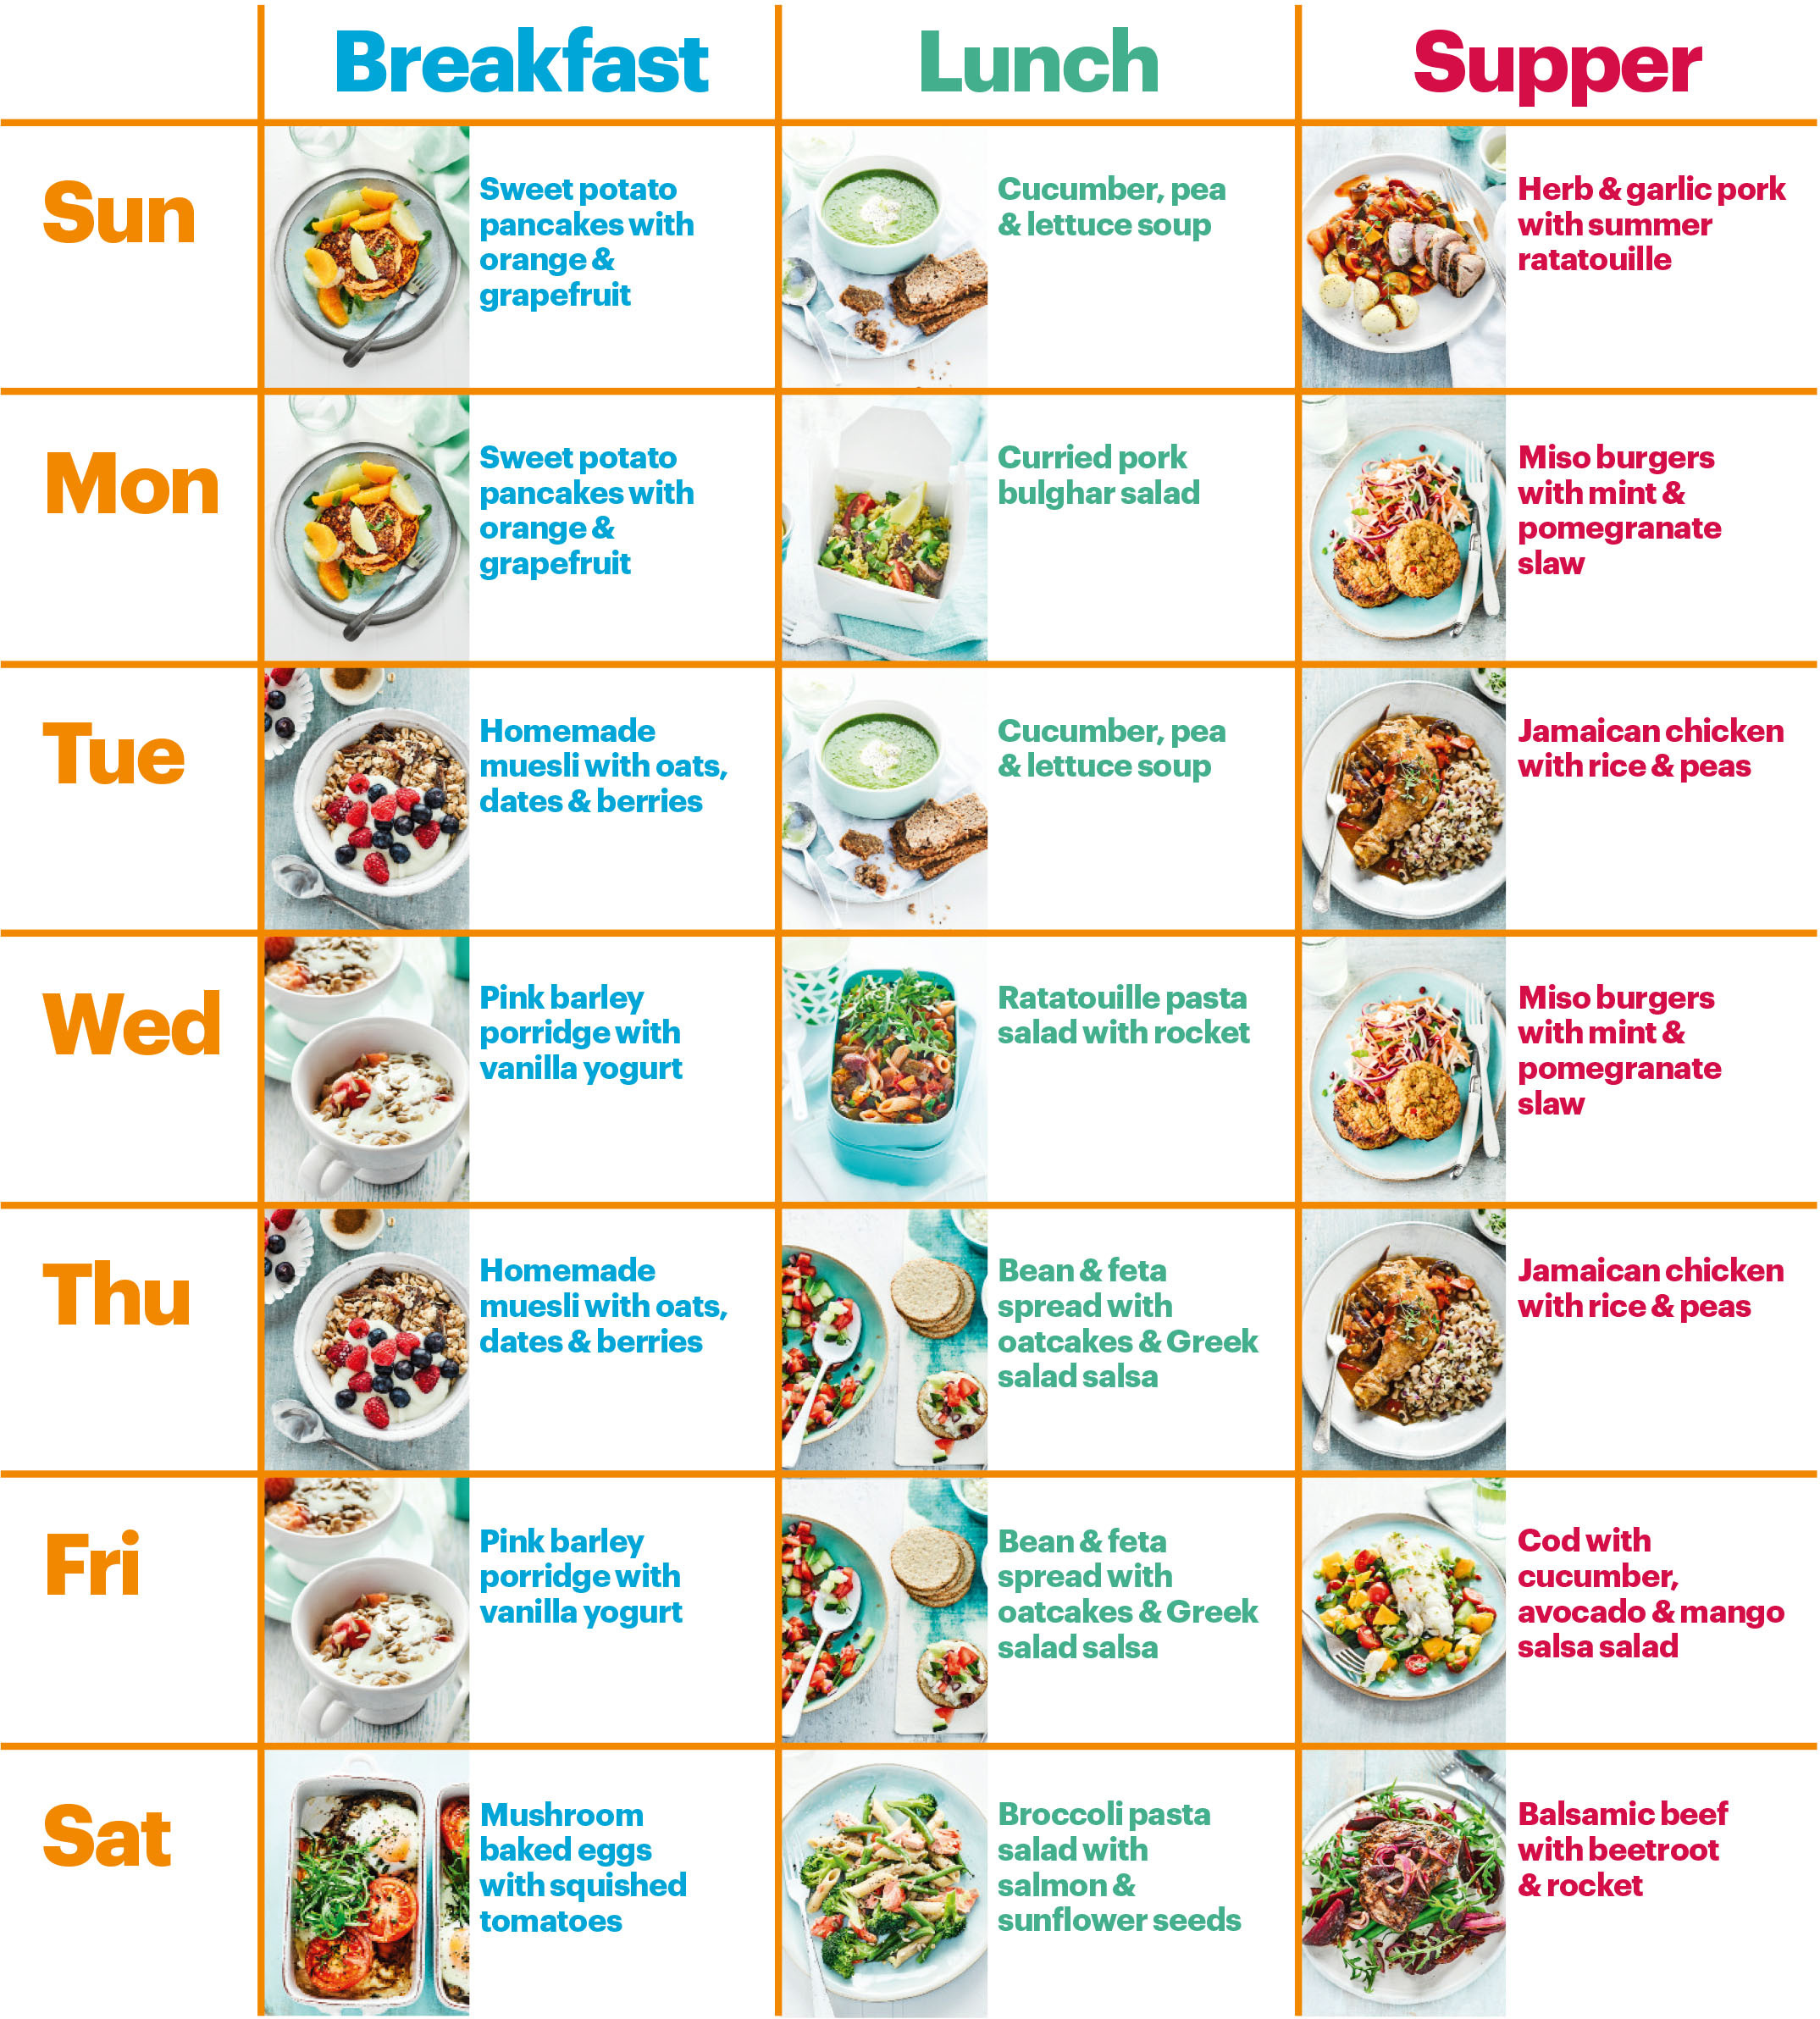 Healthy Breakfast Lunch And Dinner Chart  Healthy Breakfast Lunch And Dinner Chart Diet Plan Summer